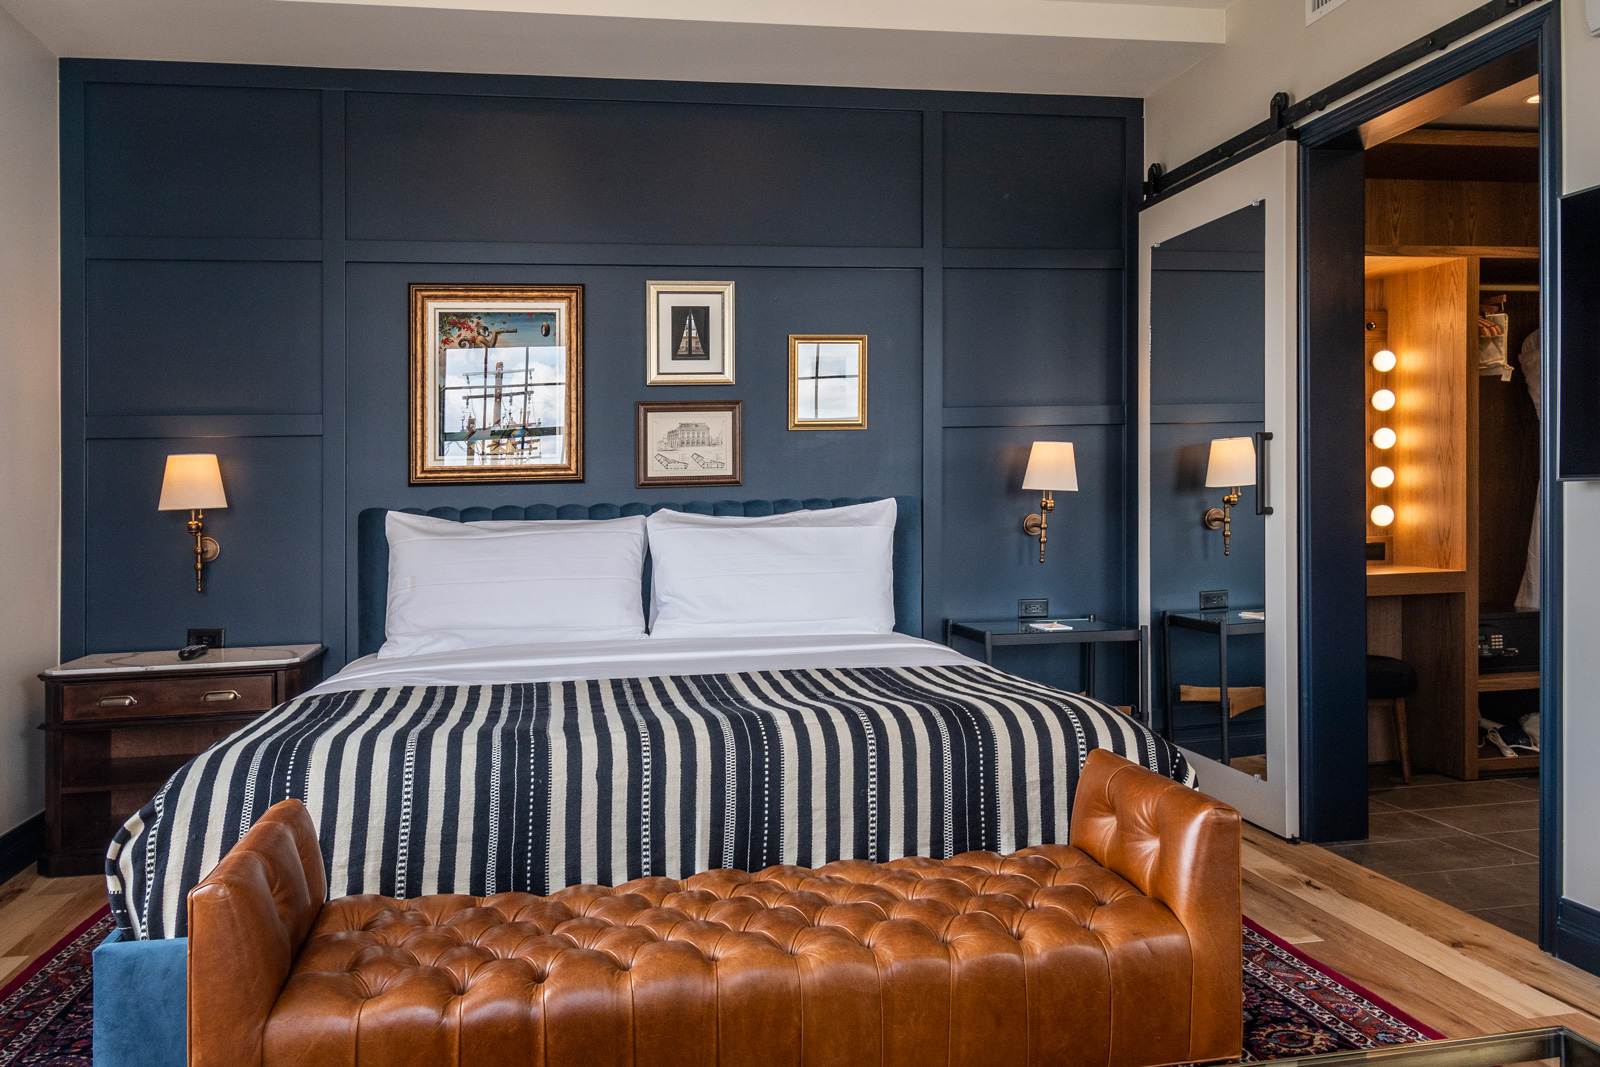 View of the king sized bed inside the Juliette King of The Ramble Hotel. A sliding door leads to the vanity and closet area.